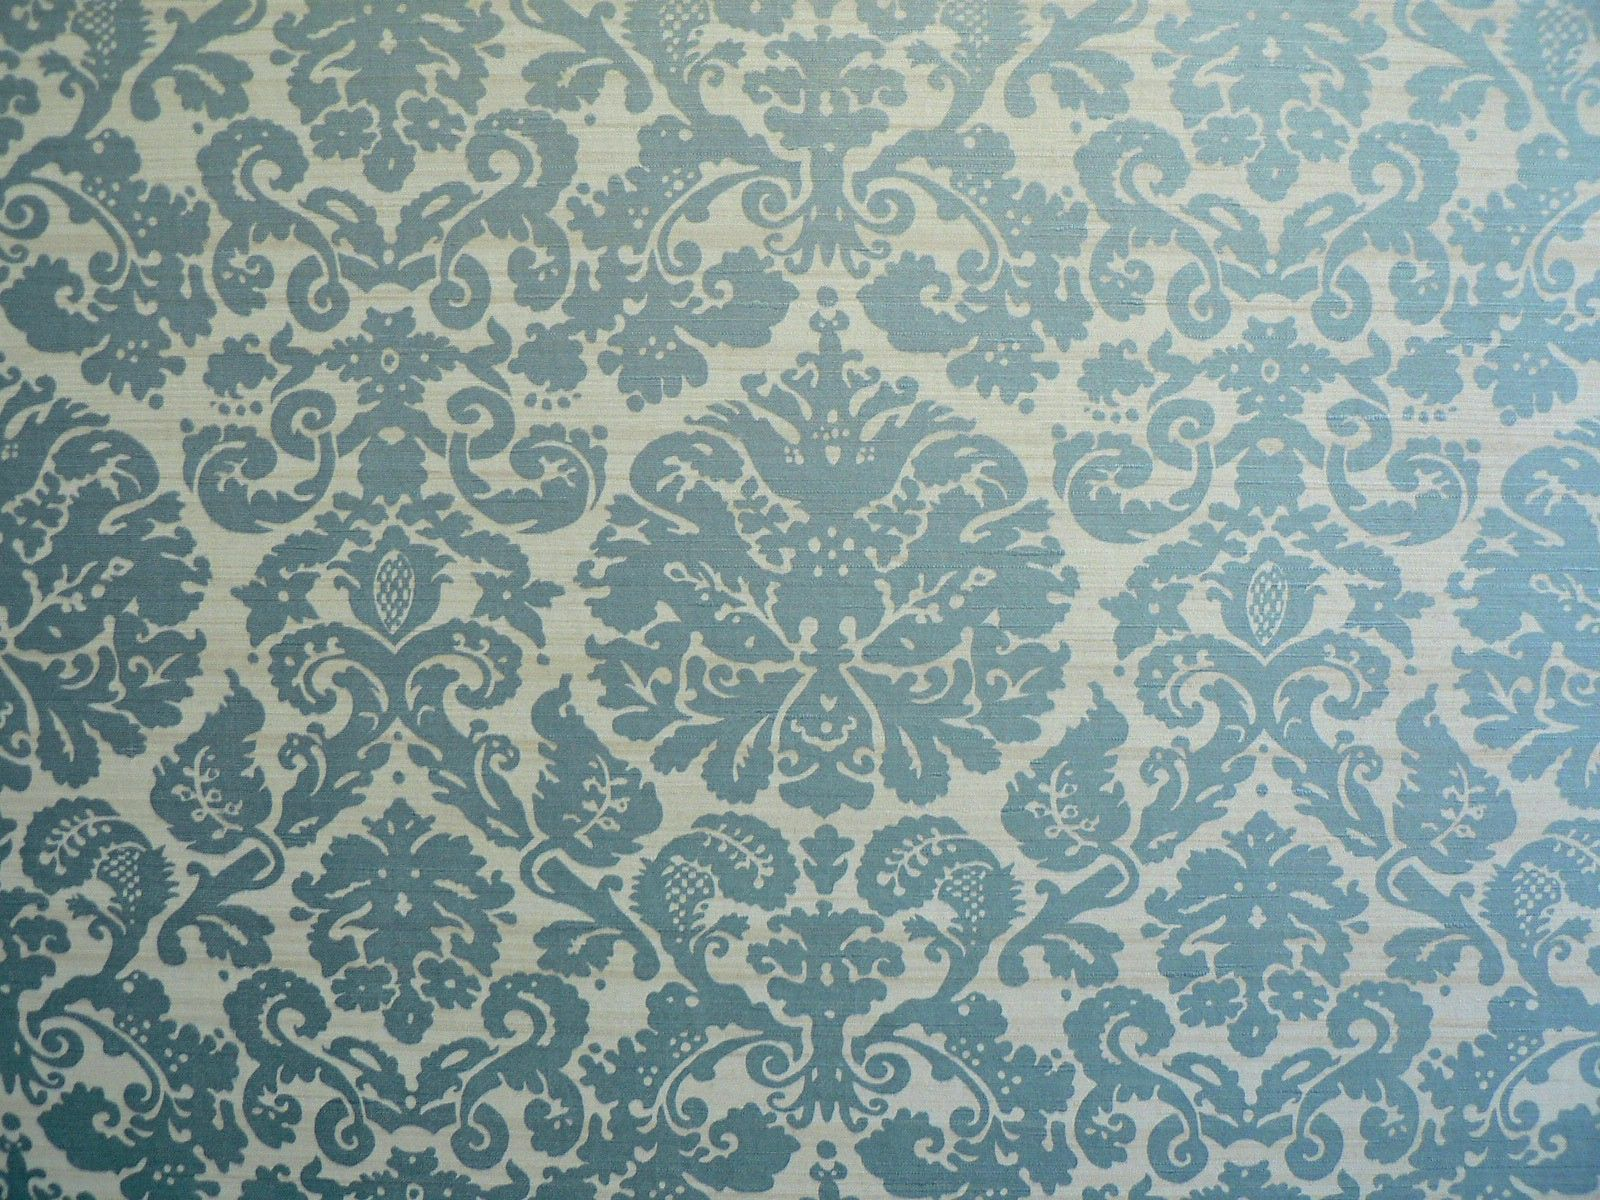 Wall Paper Patterns 23 best wallpaper patterns images on pinterest | wallpaper